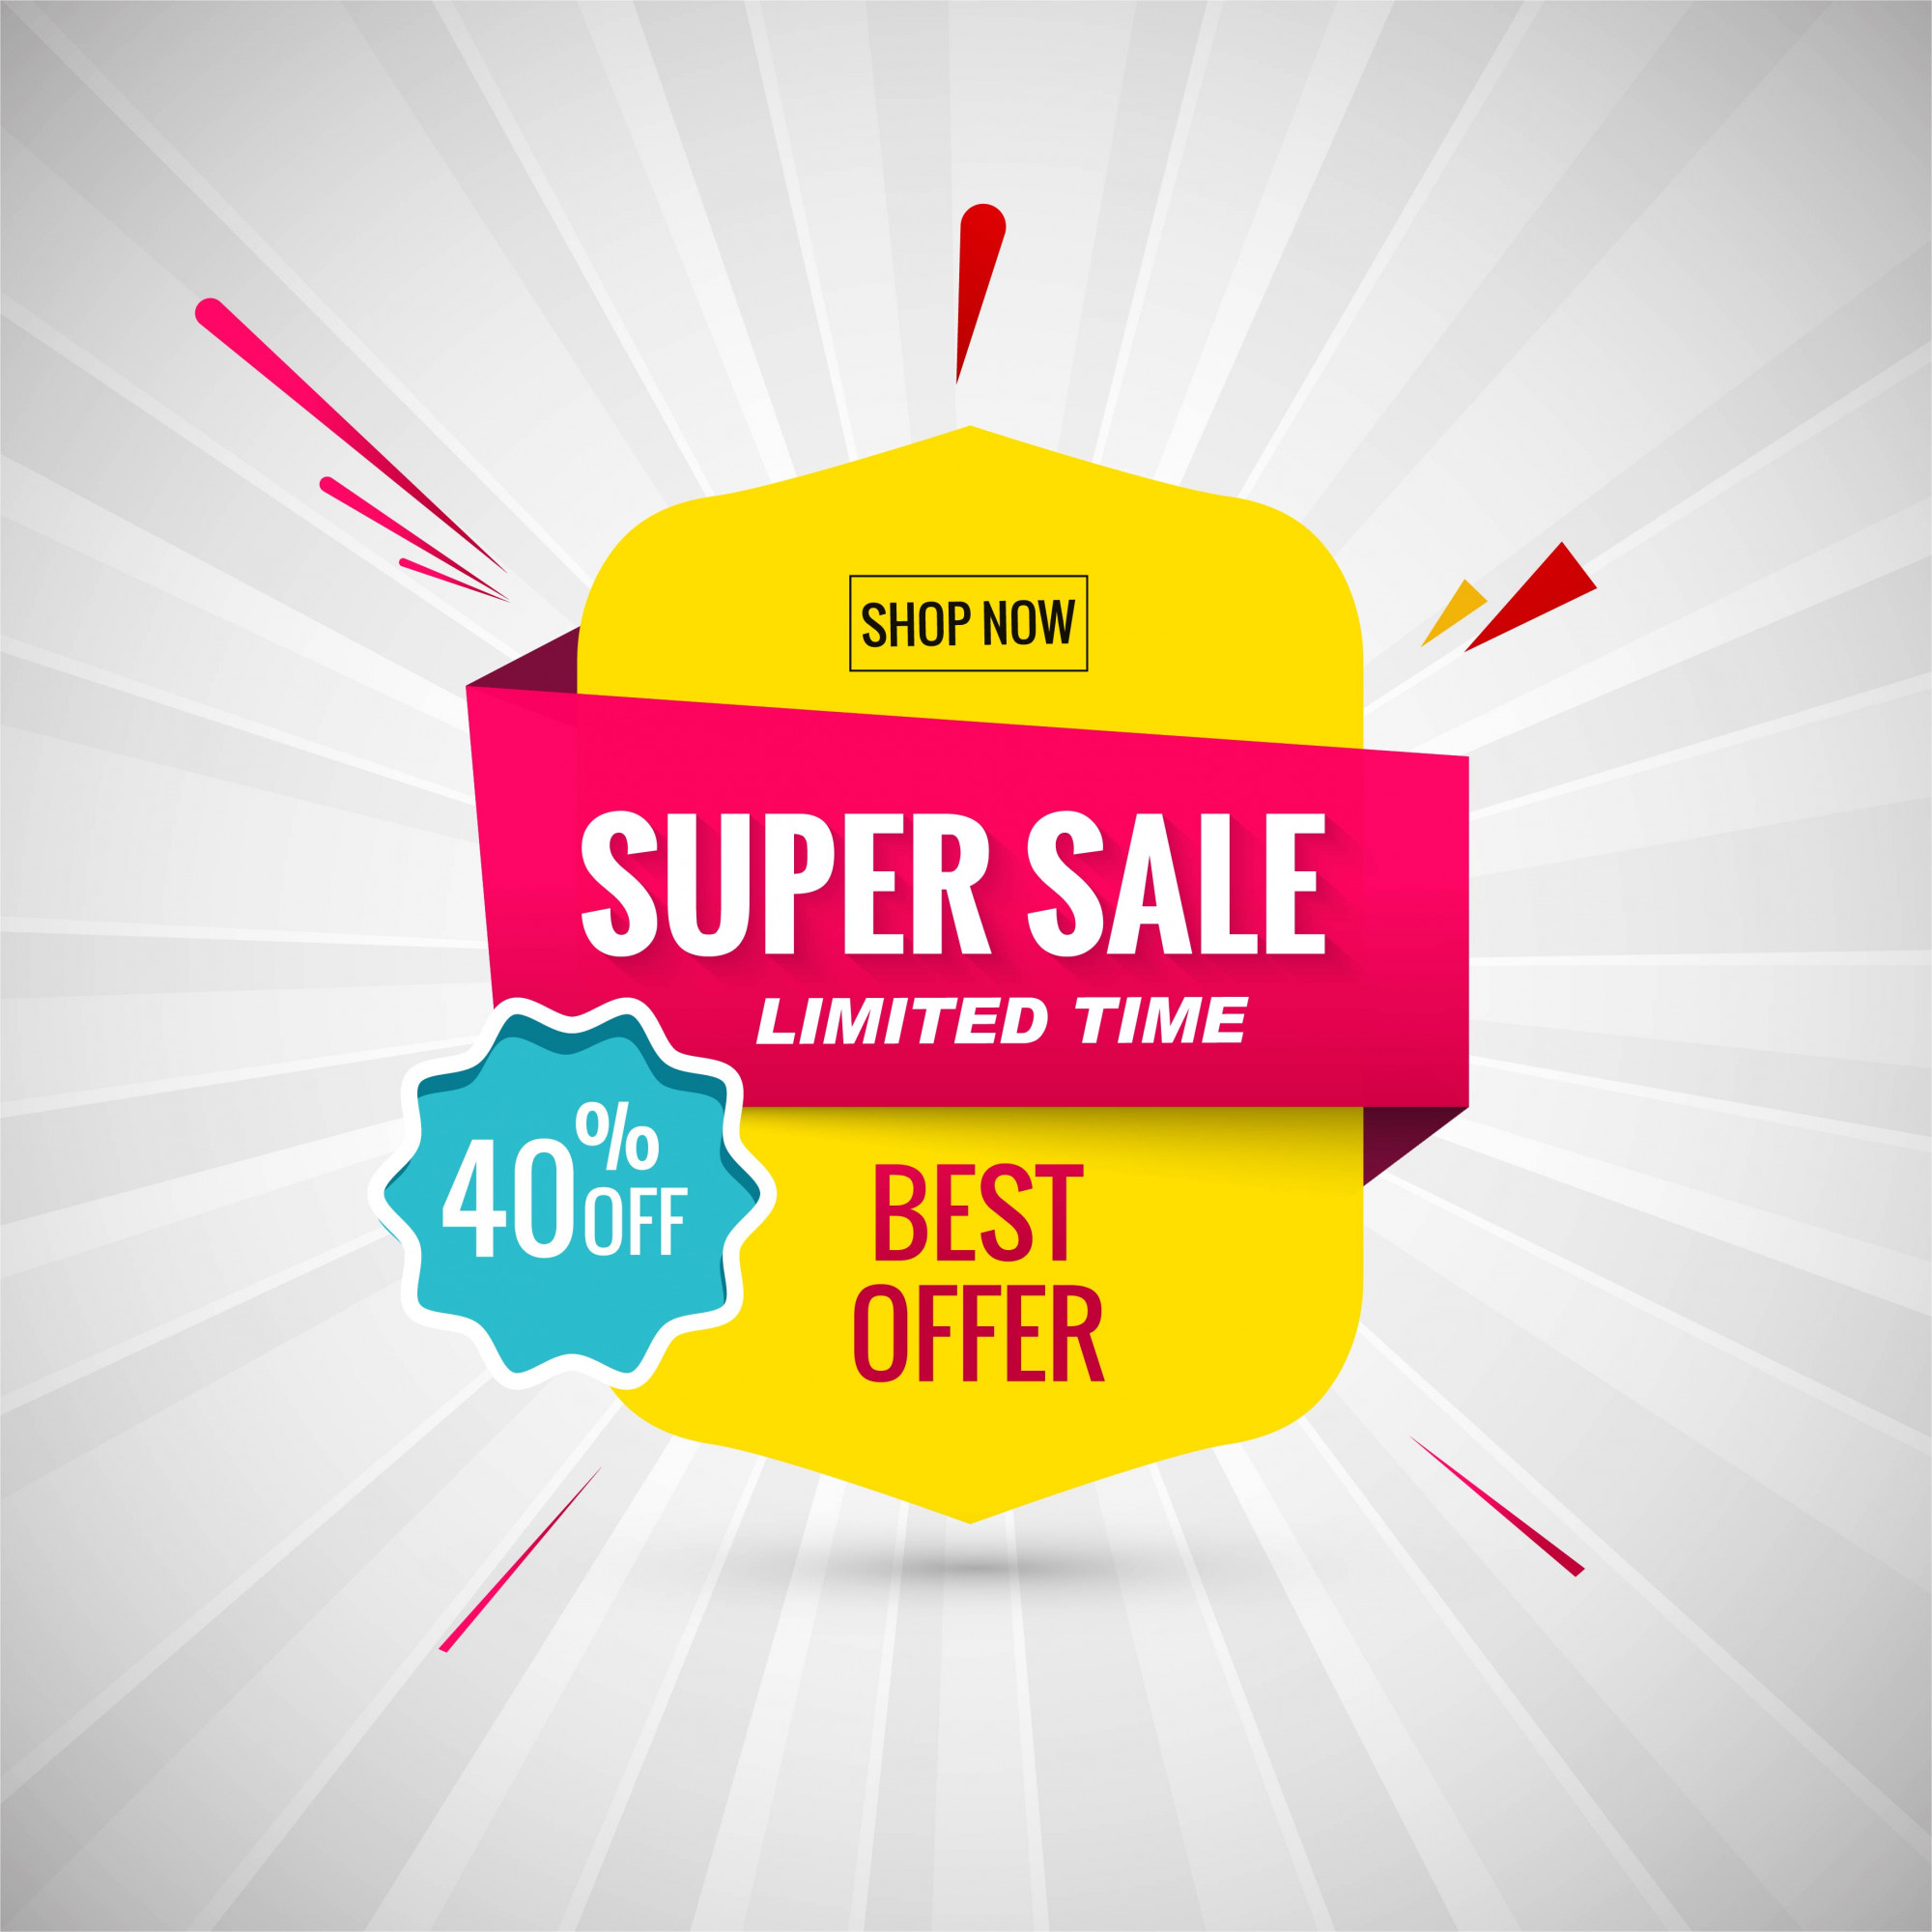 Super Sale Banner Design. Vector illustration